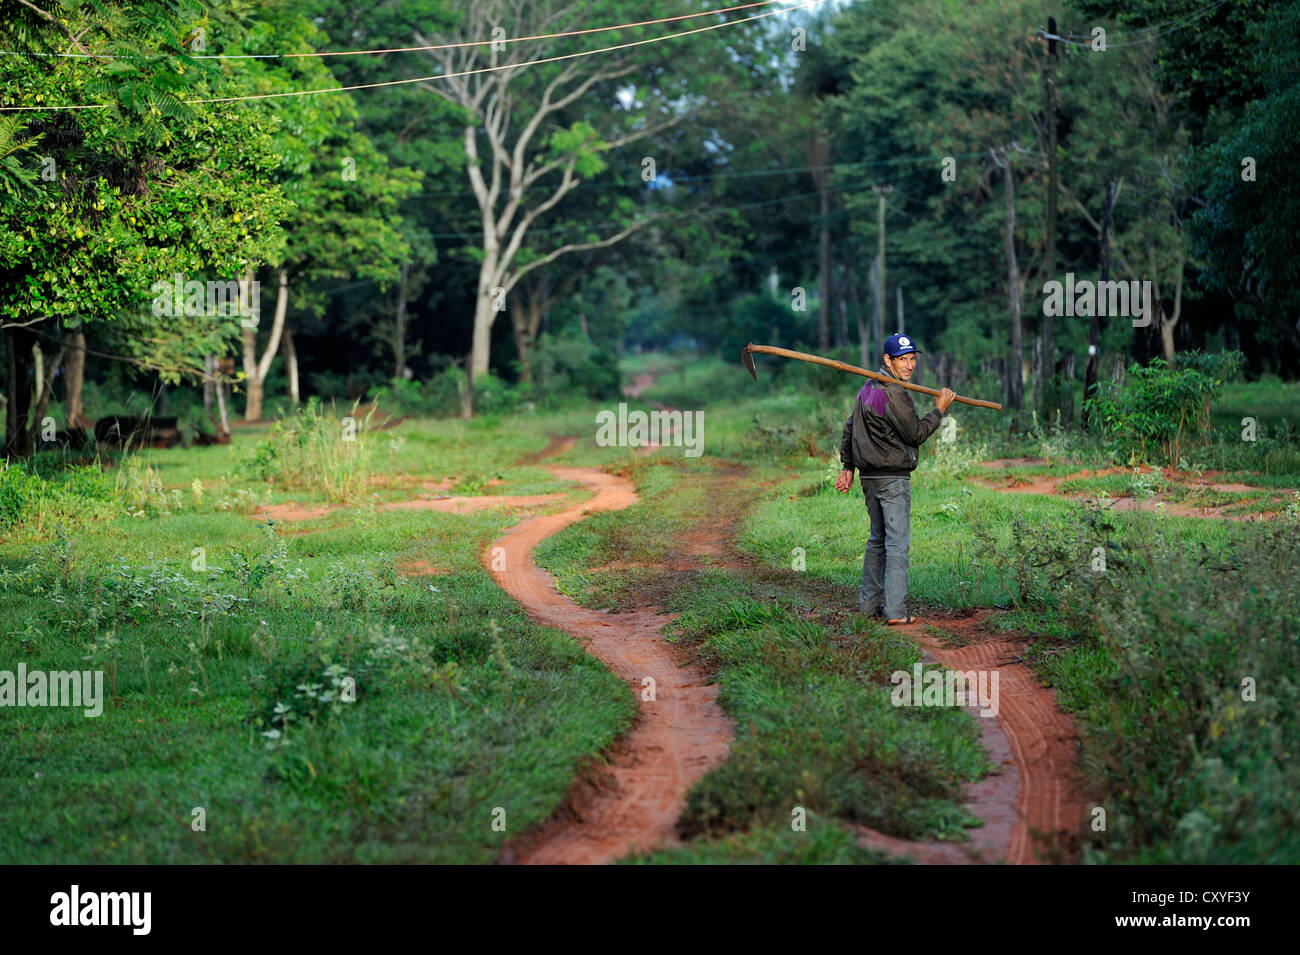 Smallholder carrying a hoe on his way to working on the field, Comunidad Arroyito, Departamento Concepcion, Paraguay - Stock Image